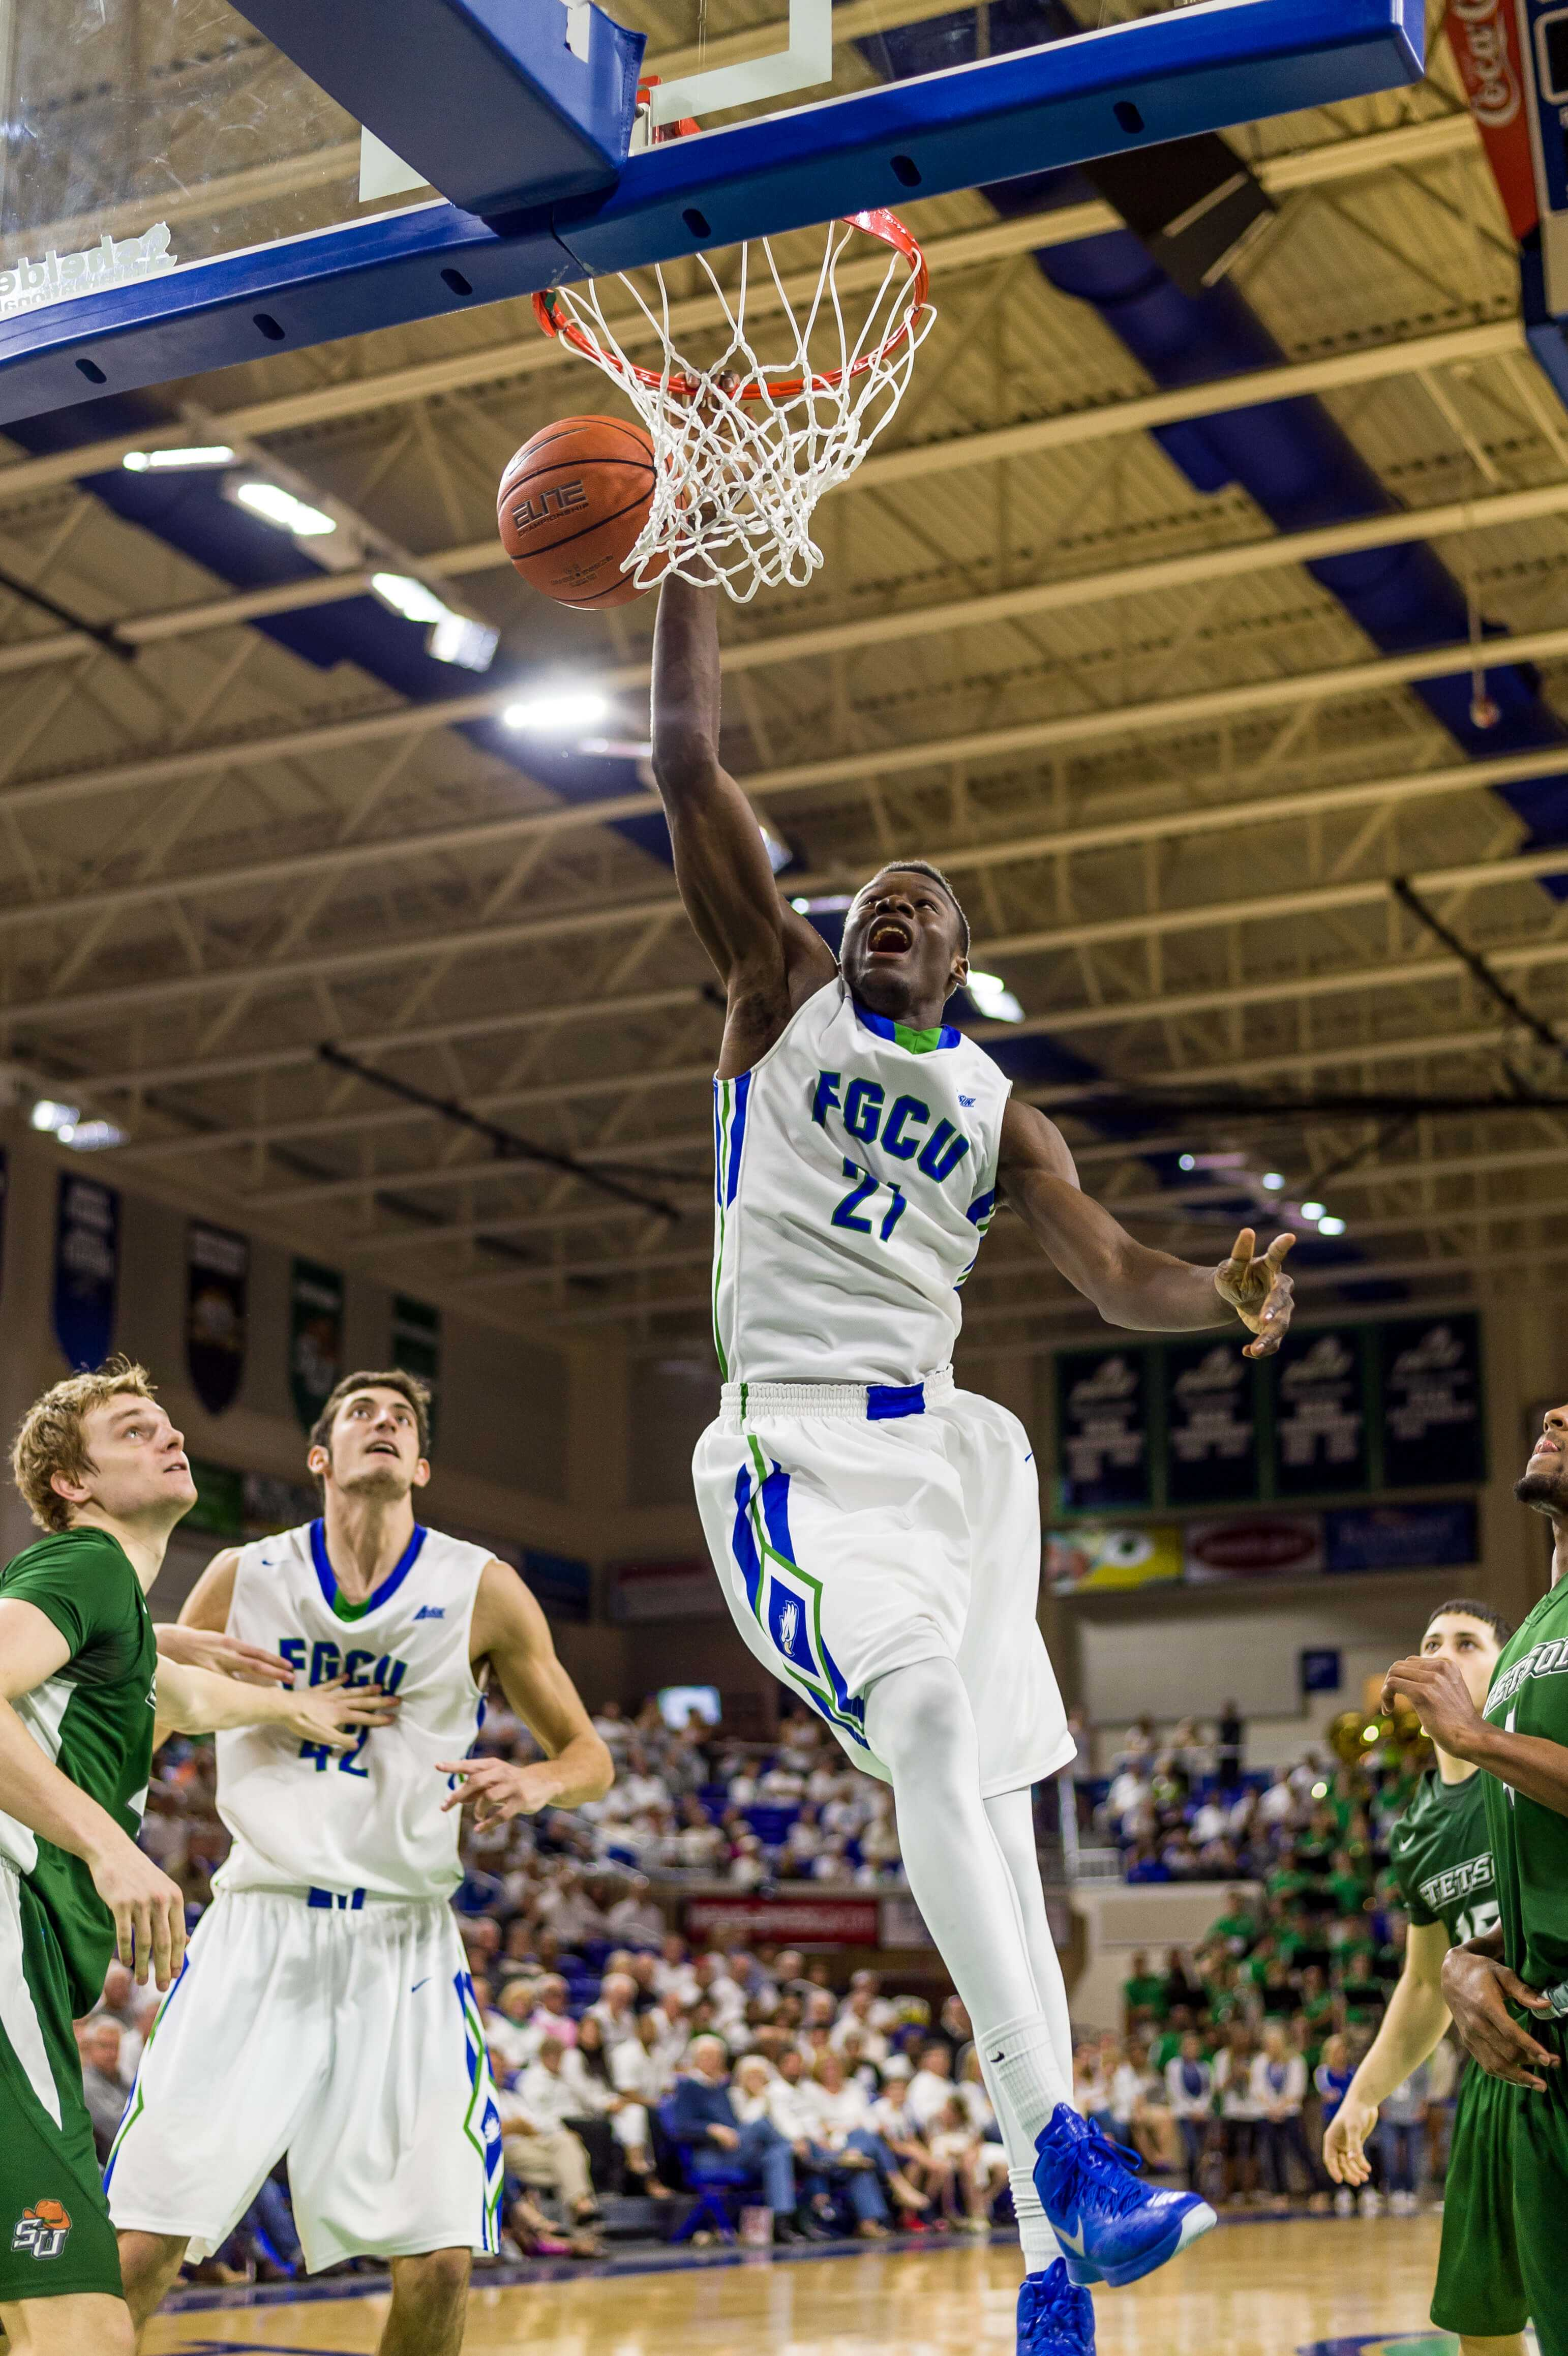 Demetris Morant out of MBB play with stress fracture